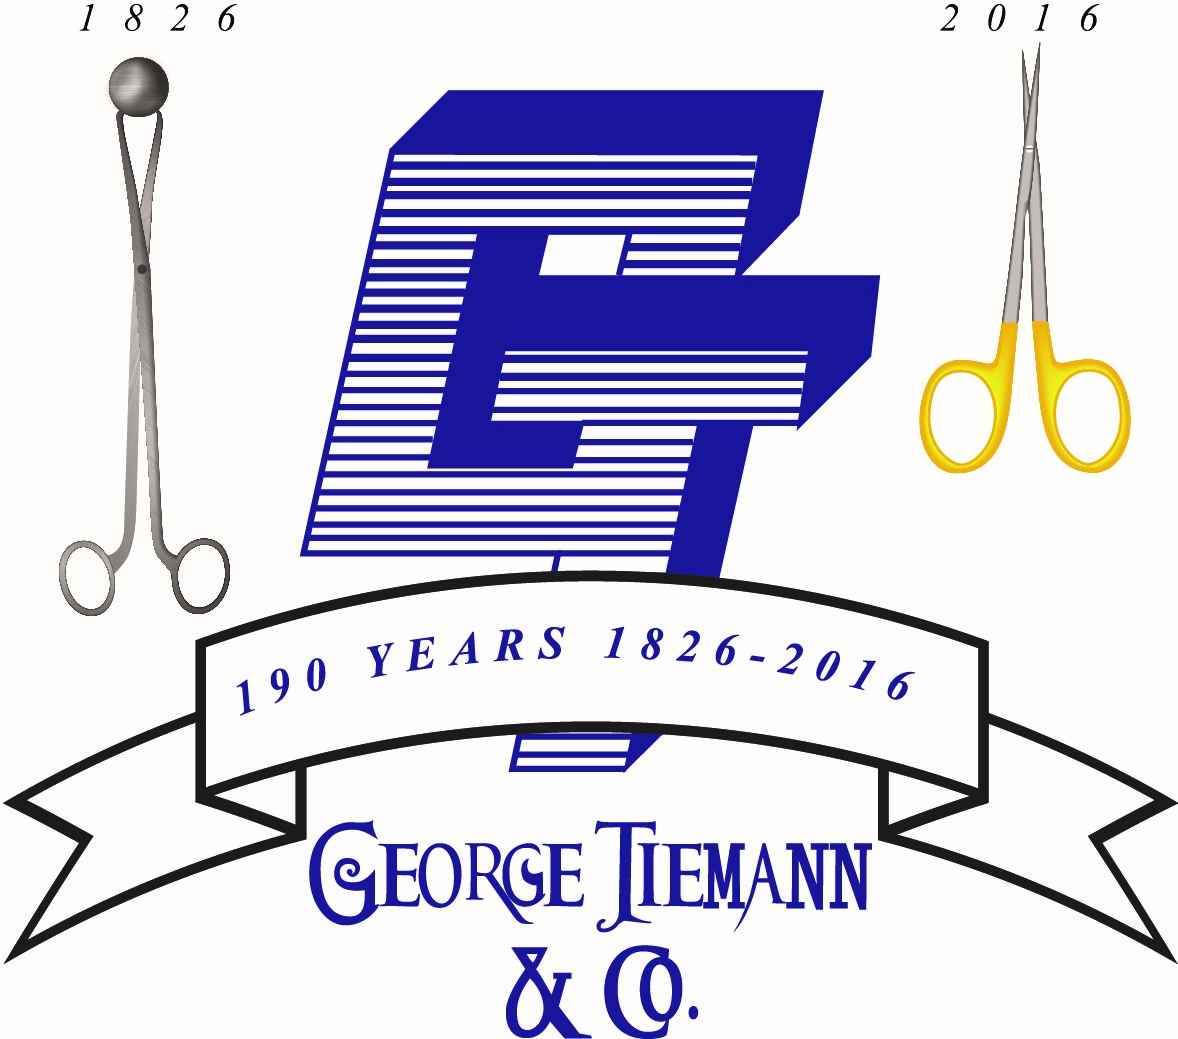 George Tiemann celebrating 190 years